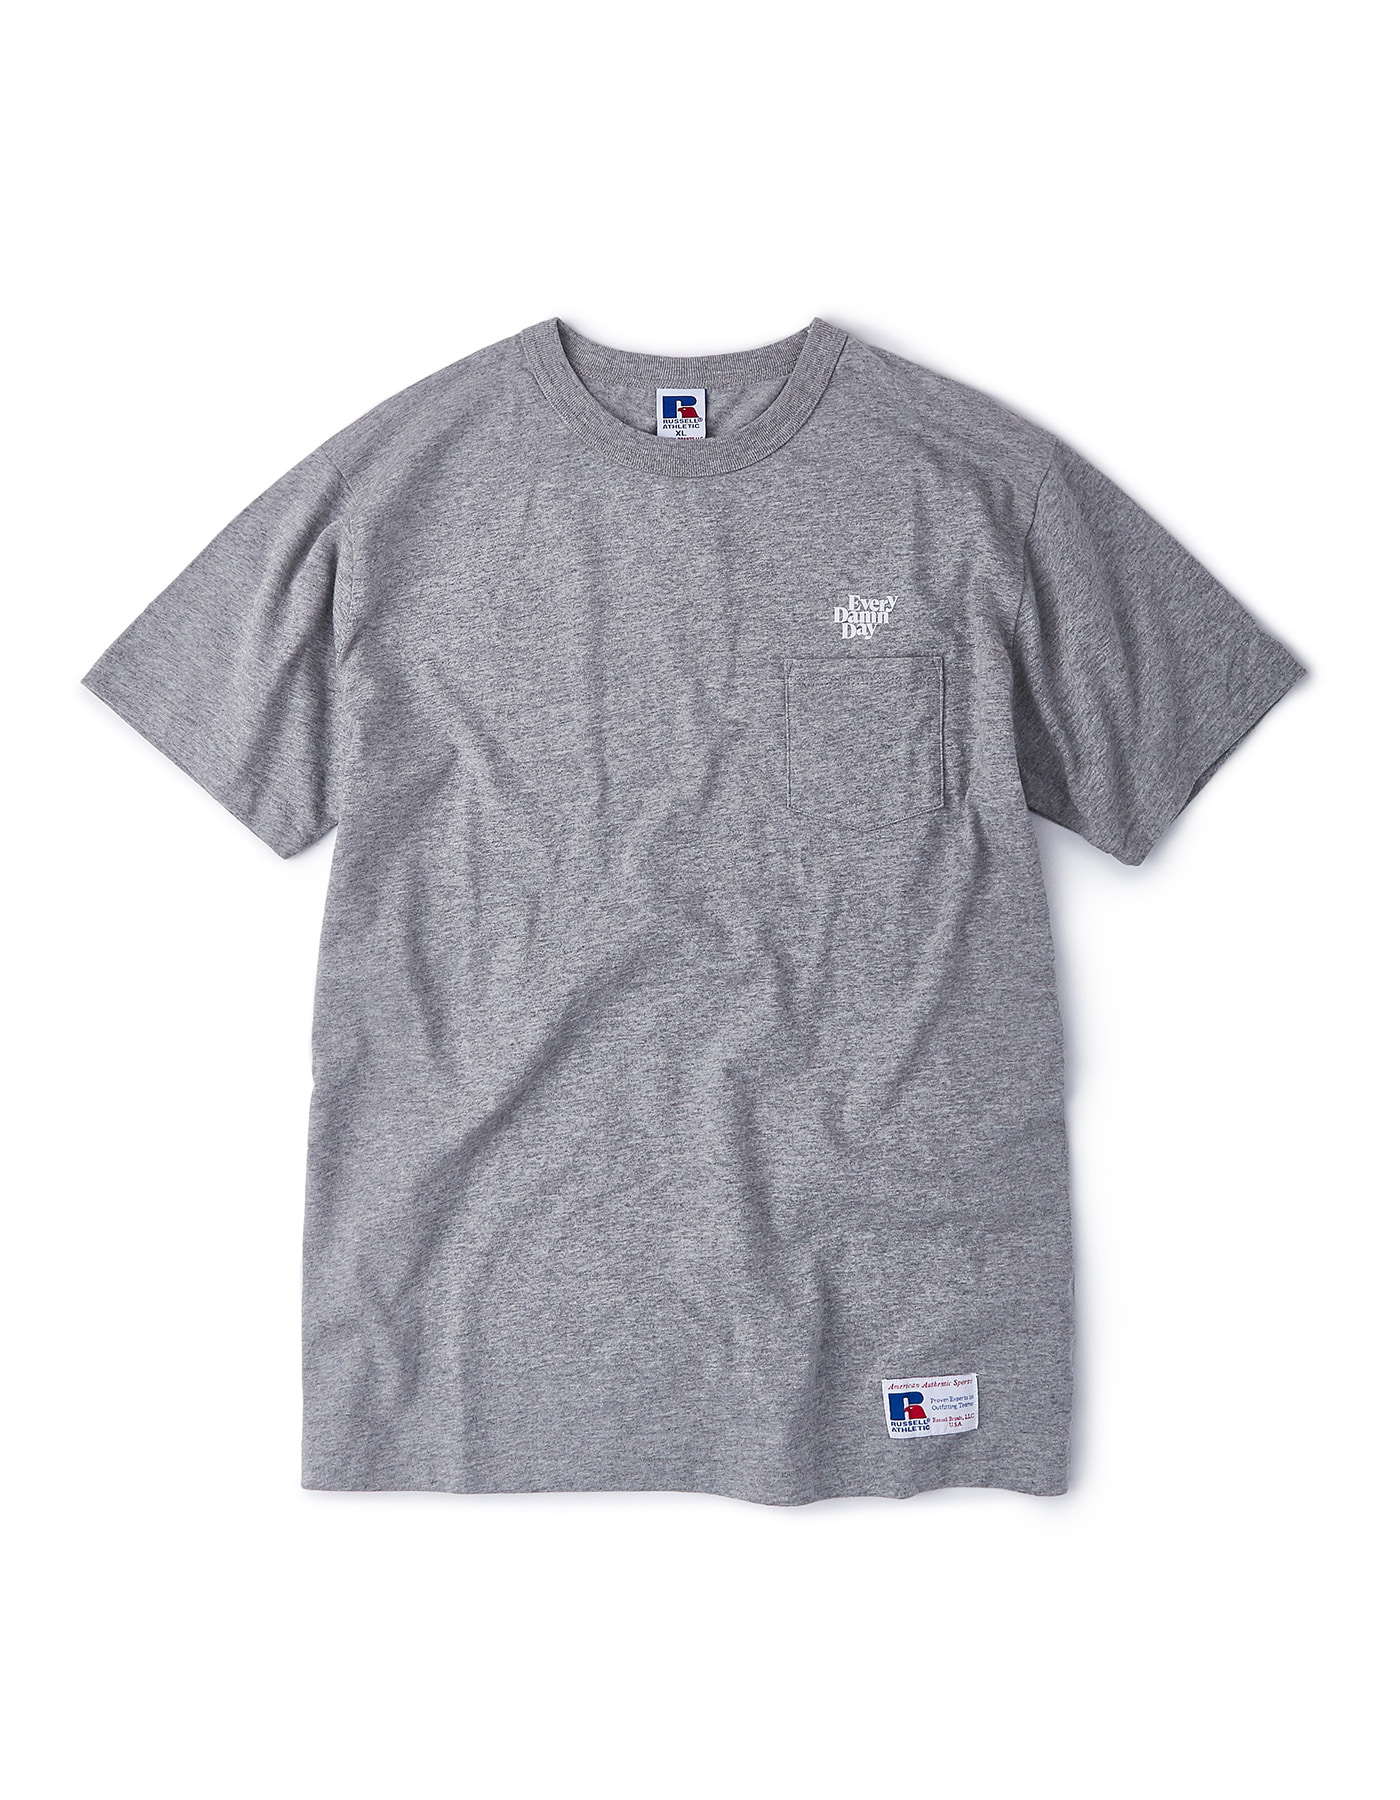 Every Damn Day Pocket T-shirts - Grey/White